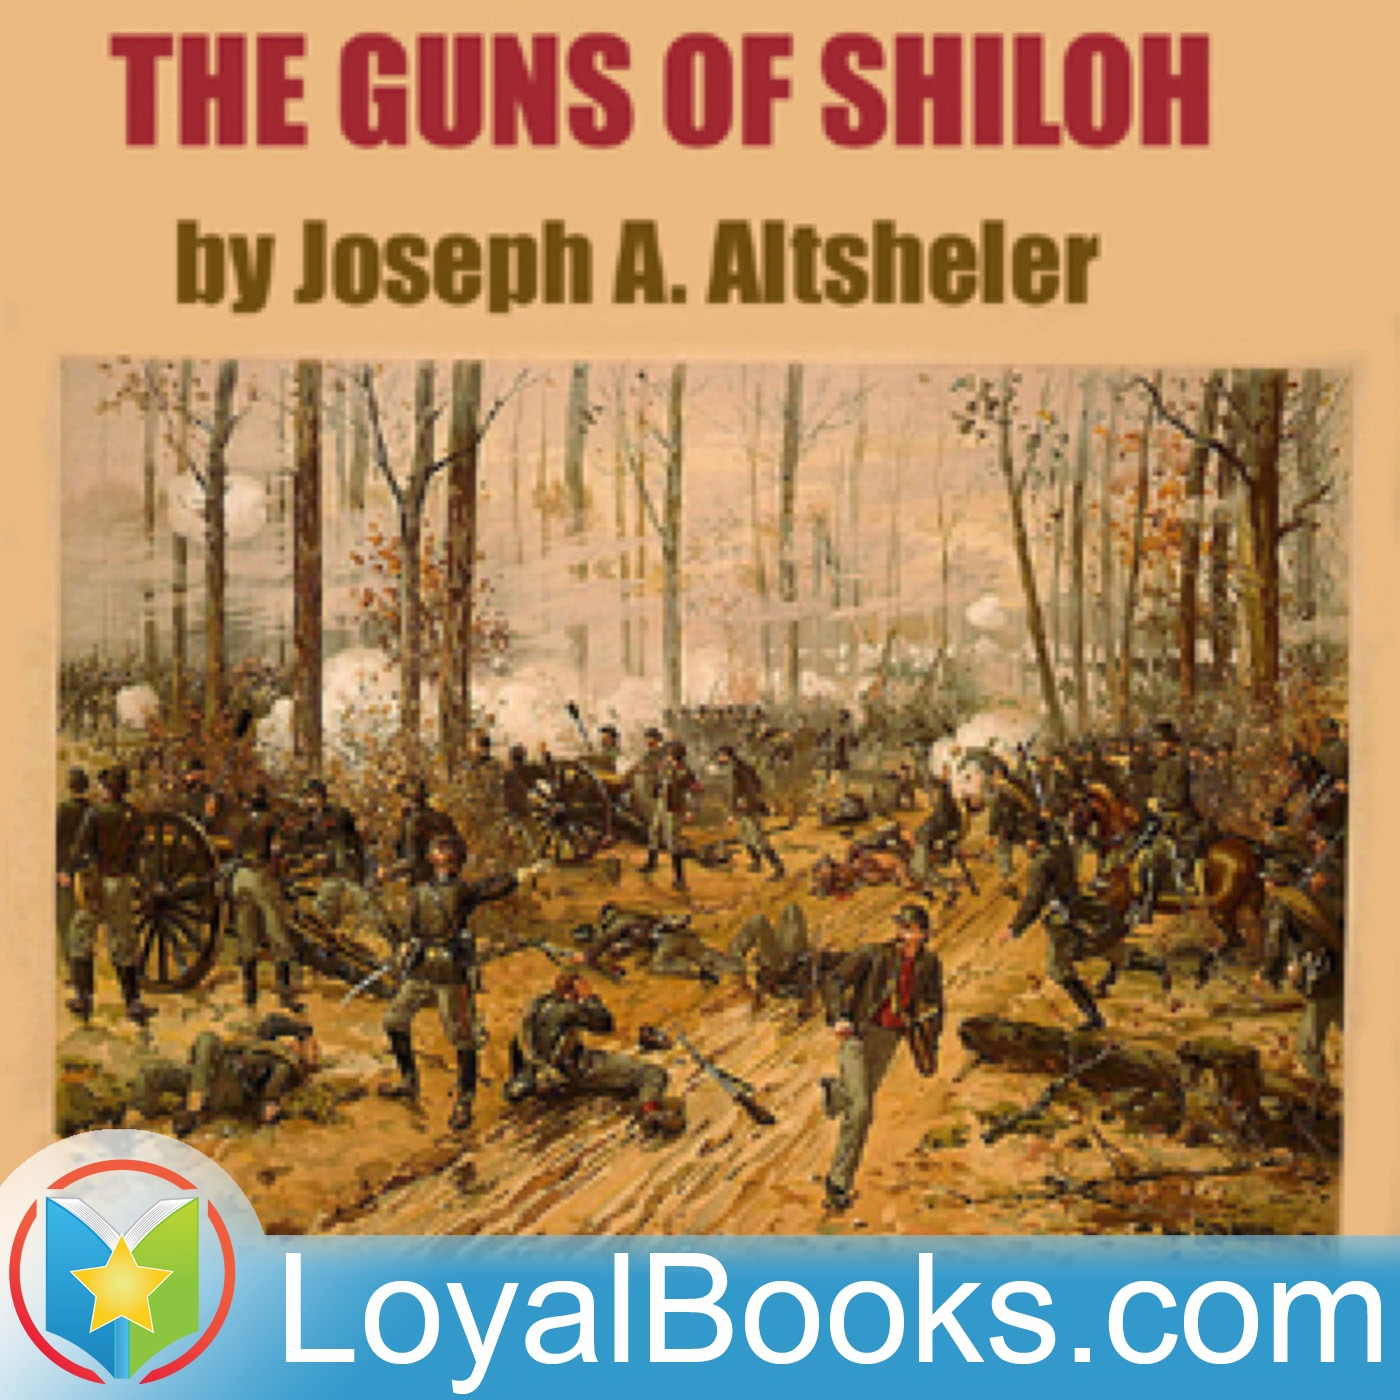 the battle of shiloh essay